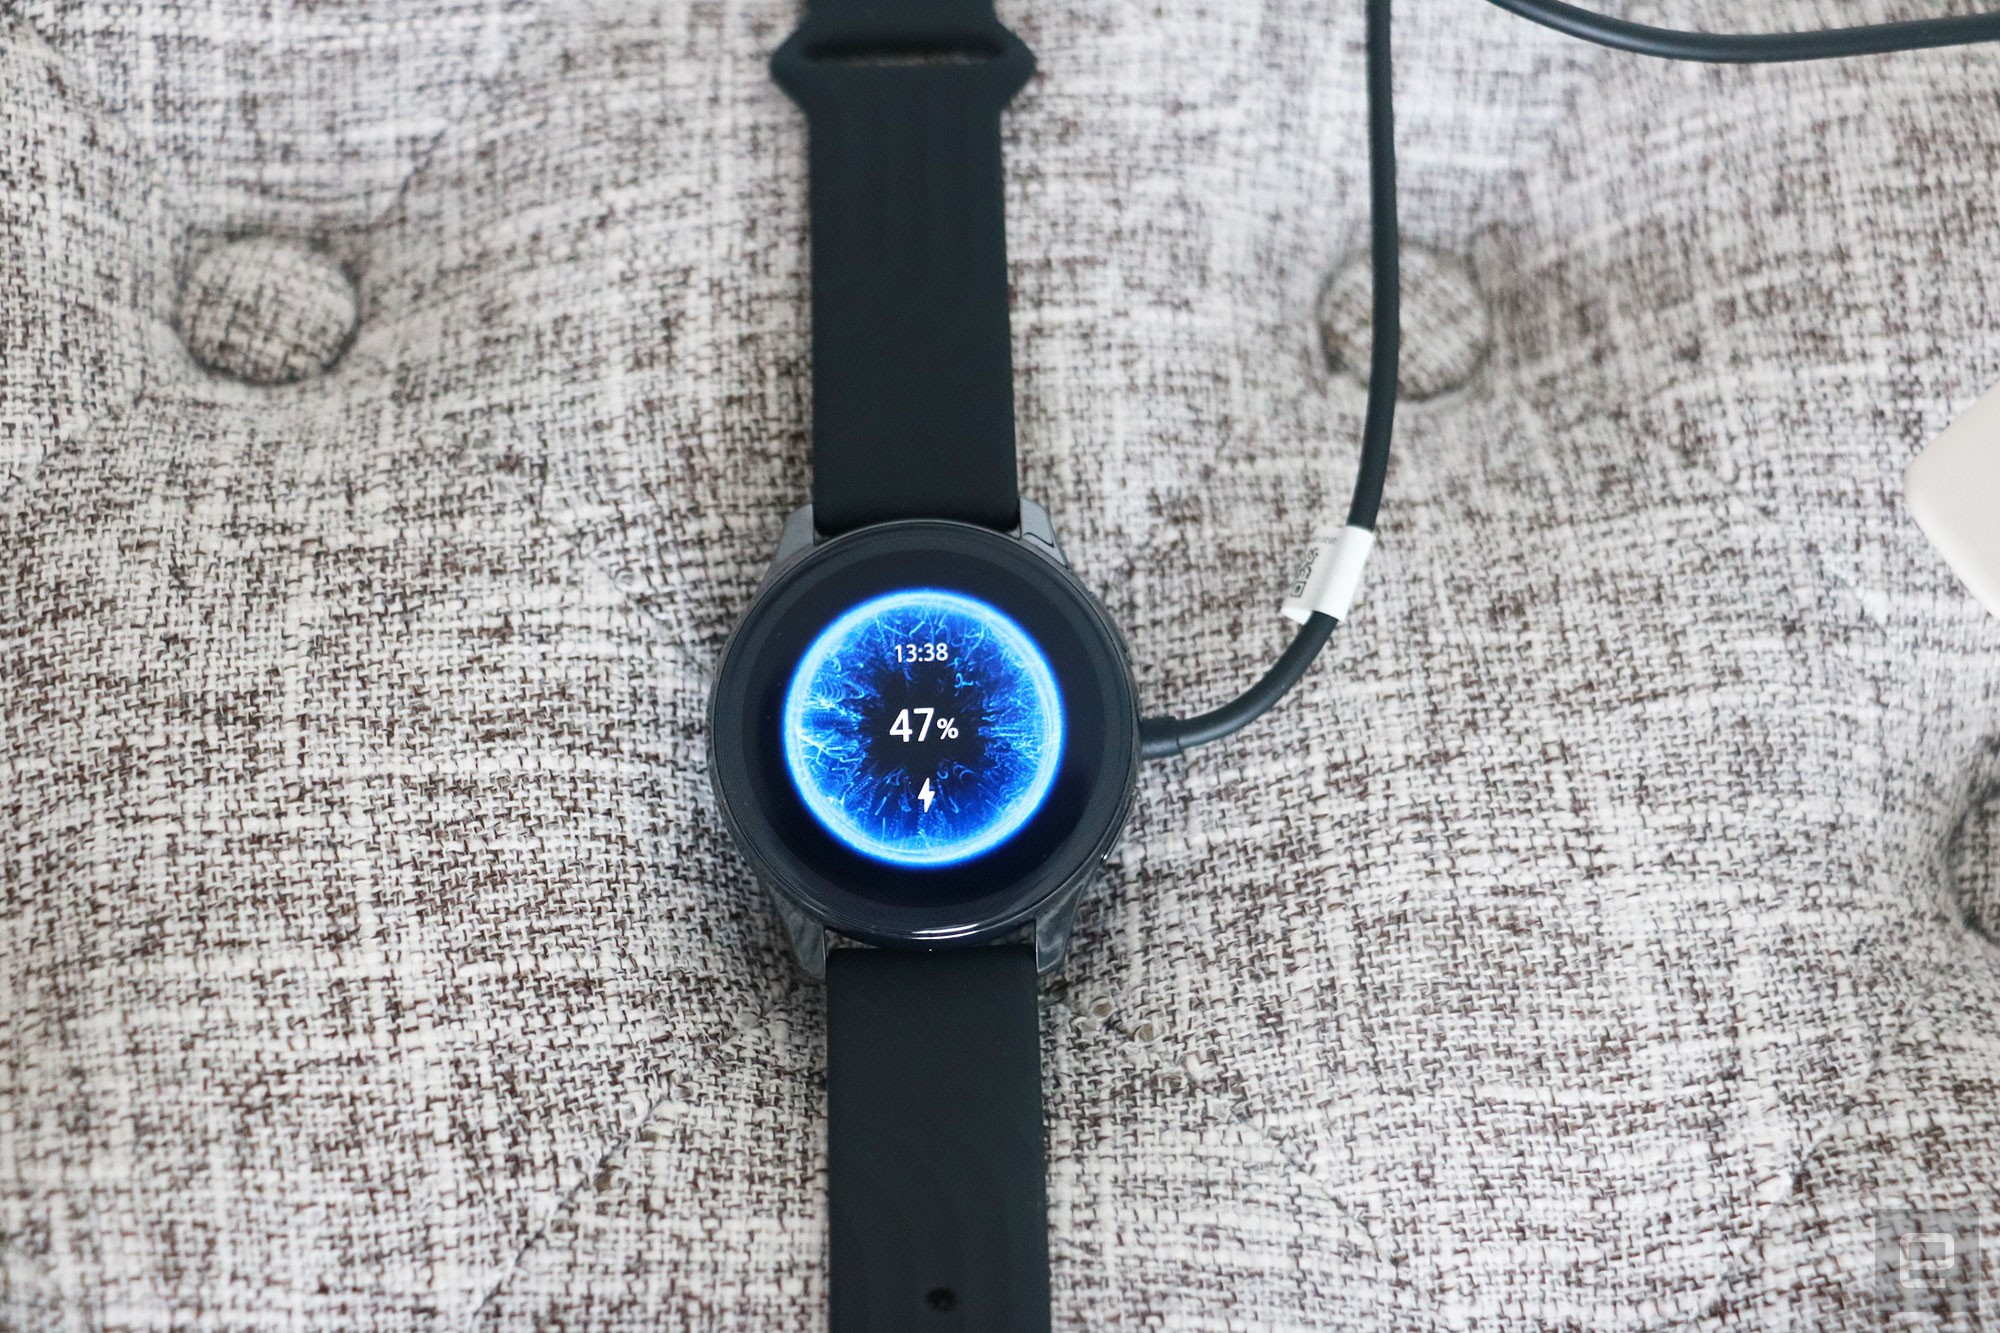 <p>OnePlus Watch review photos. OnePlus Watch on a charger with display showing 47 percent battery and time at 1:38pm.</p>